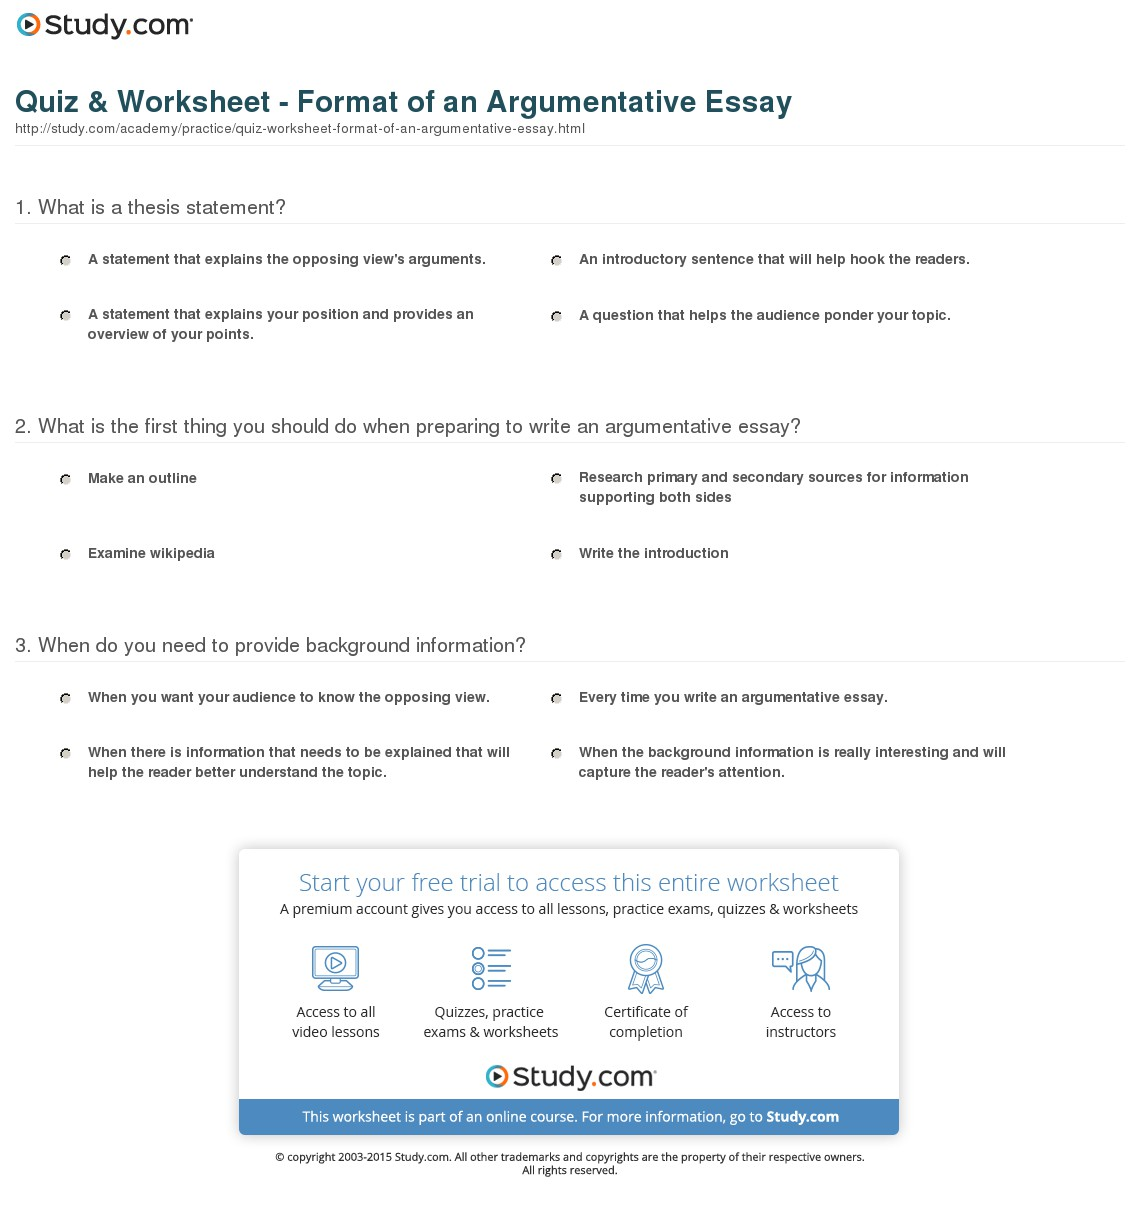 015 Argumentative Essay Format Quiz Worksheet Of An Best Outline Template College Examples Pdf Full